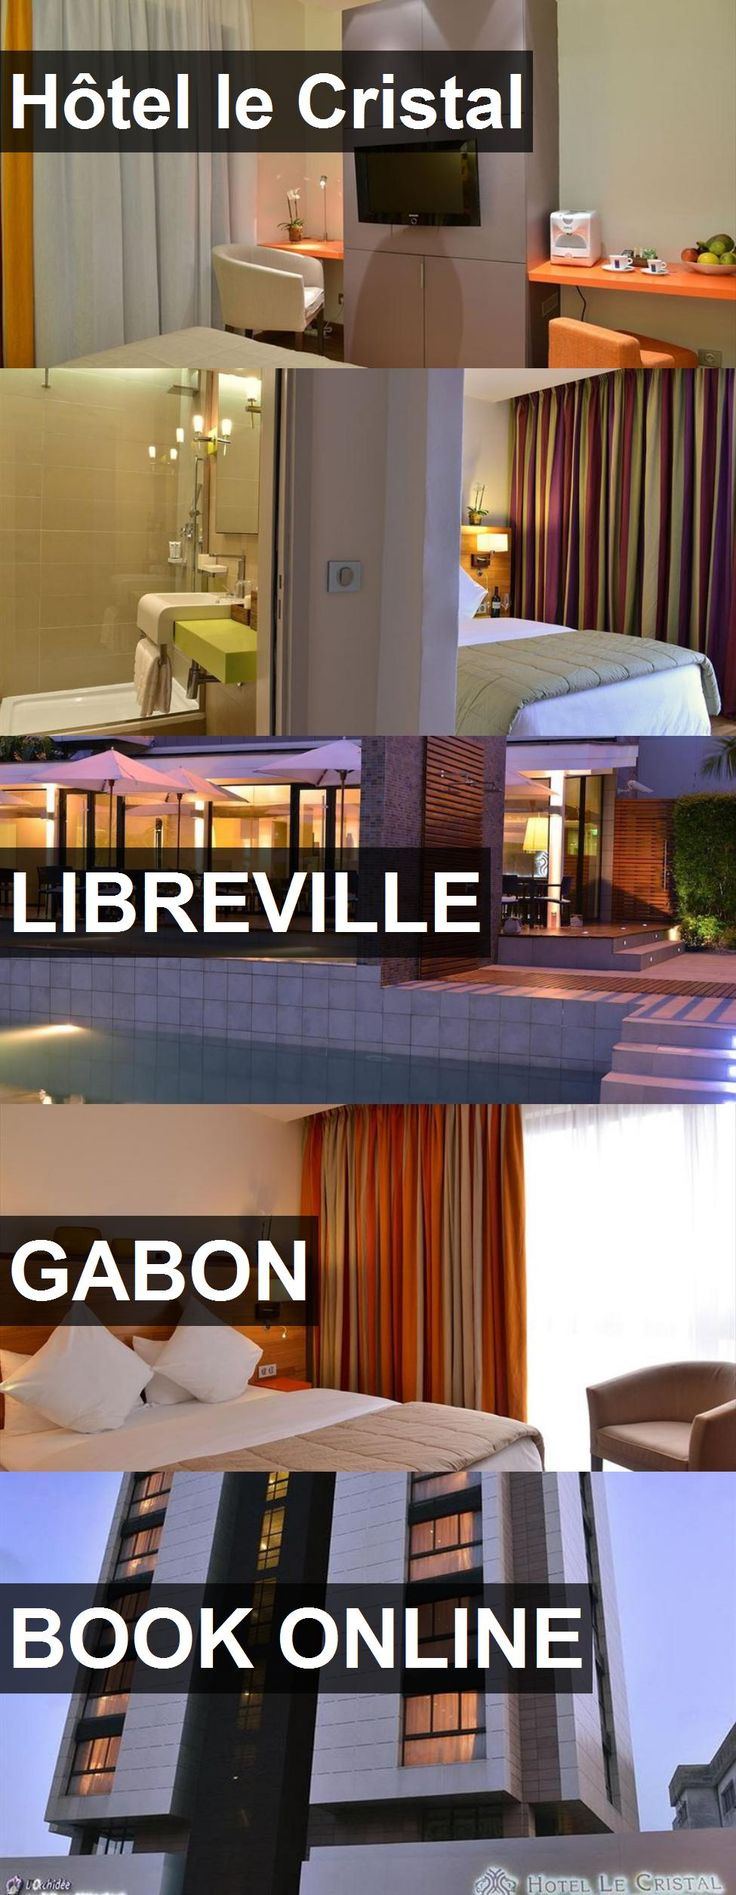 Hotel Hôtel le Cristal in Libreville, Gabon. For more information, photos, reviews and best prices please follow the link. #Gabon #Libreville #travel #vacation #hotel